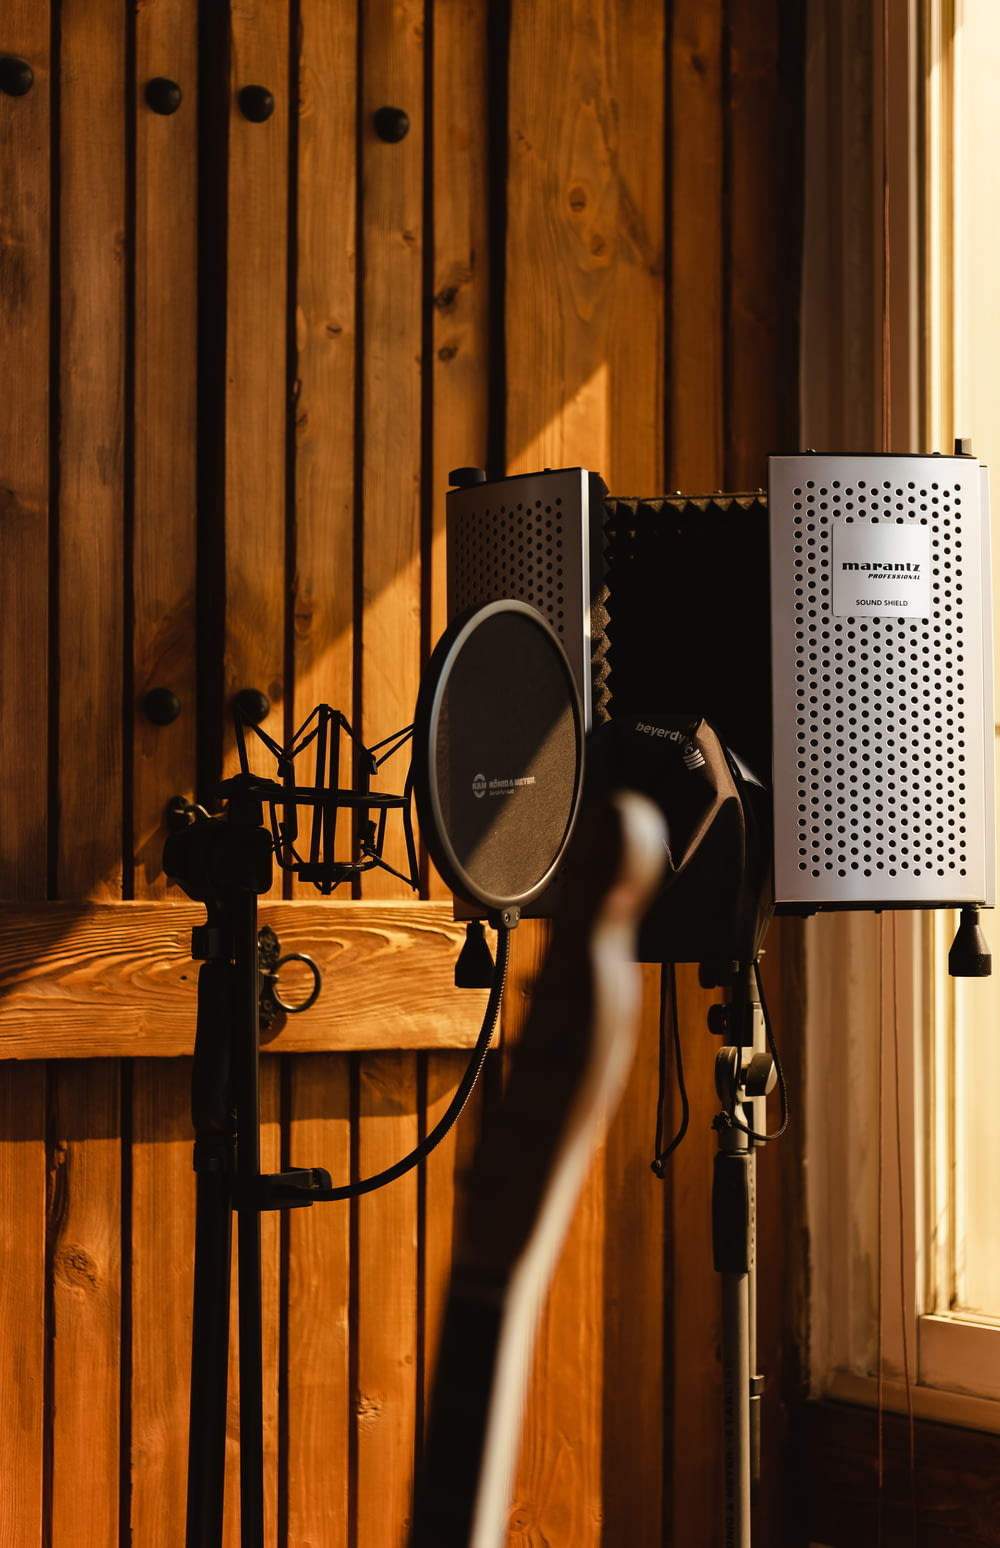 black and gray microphone on stand